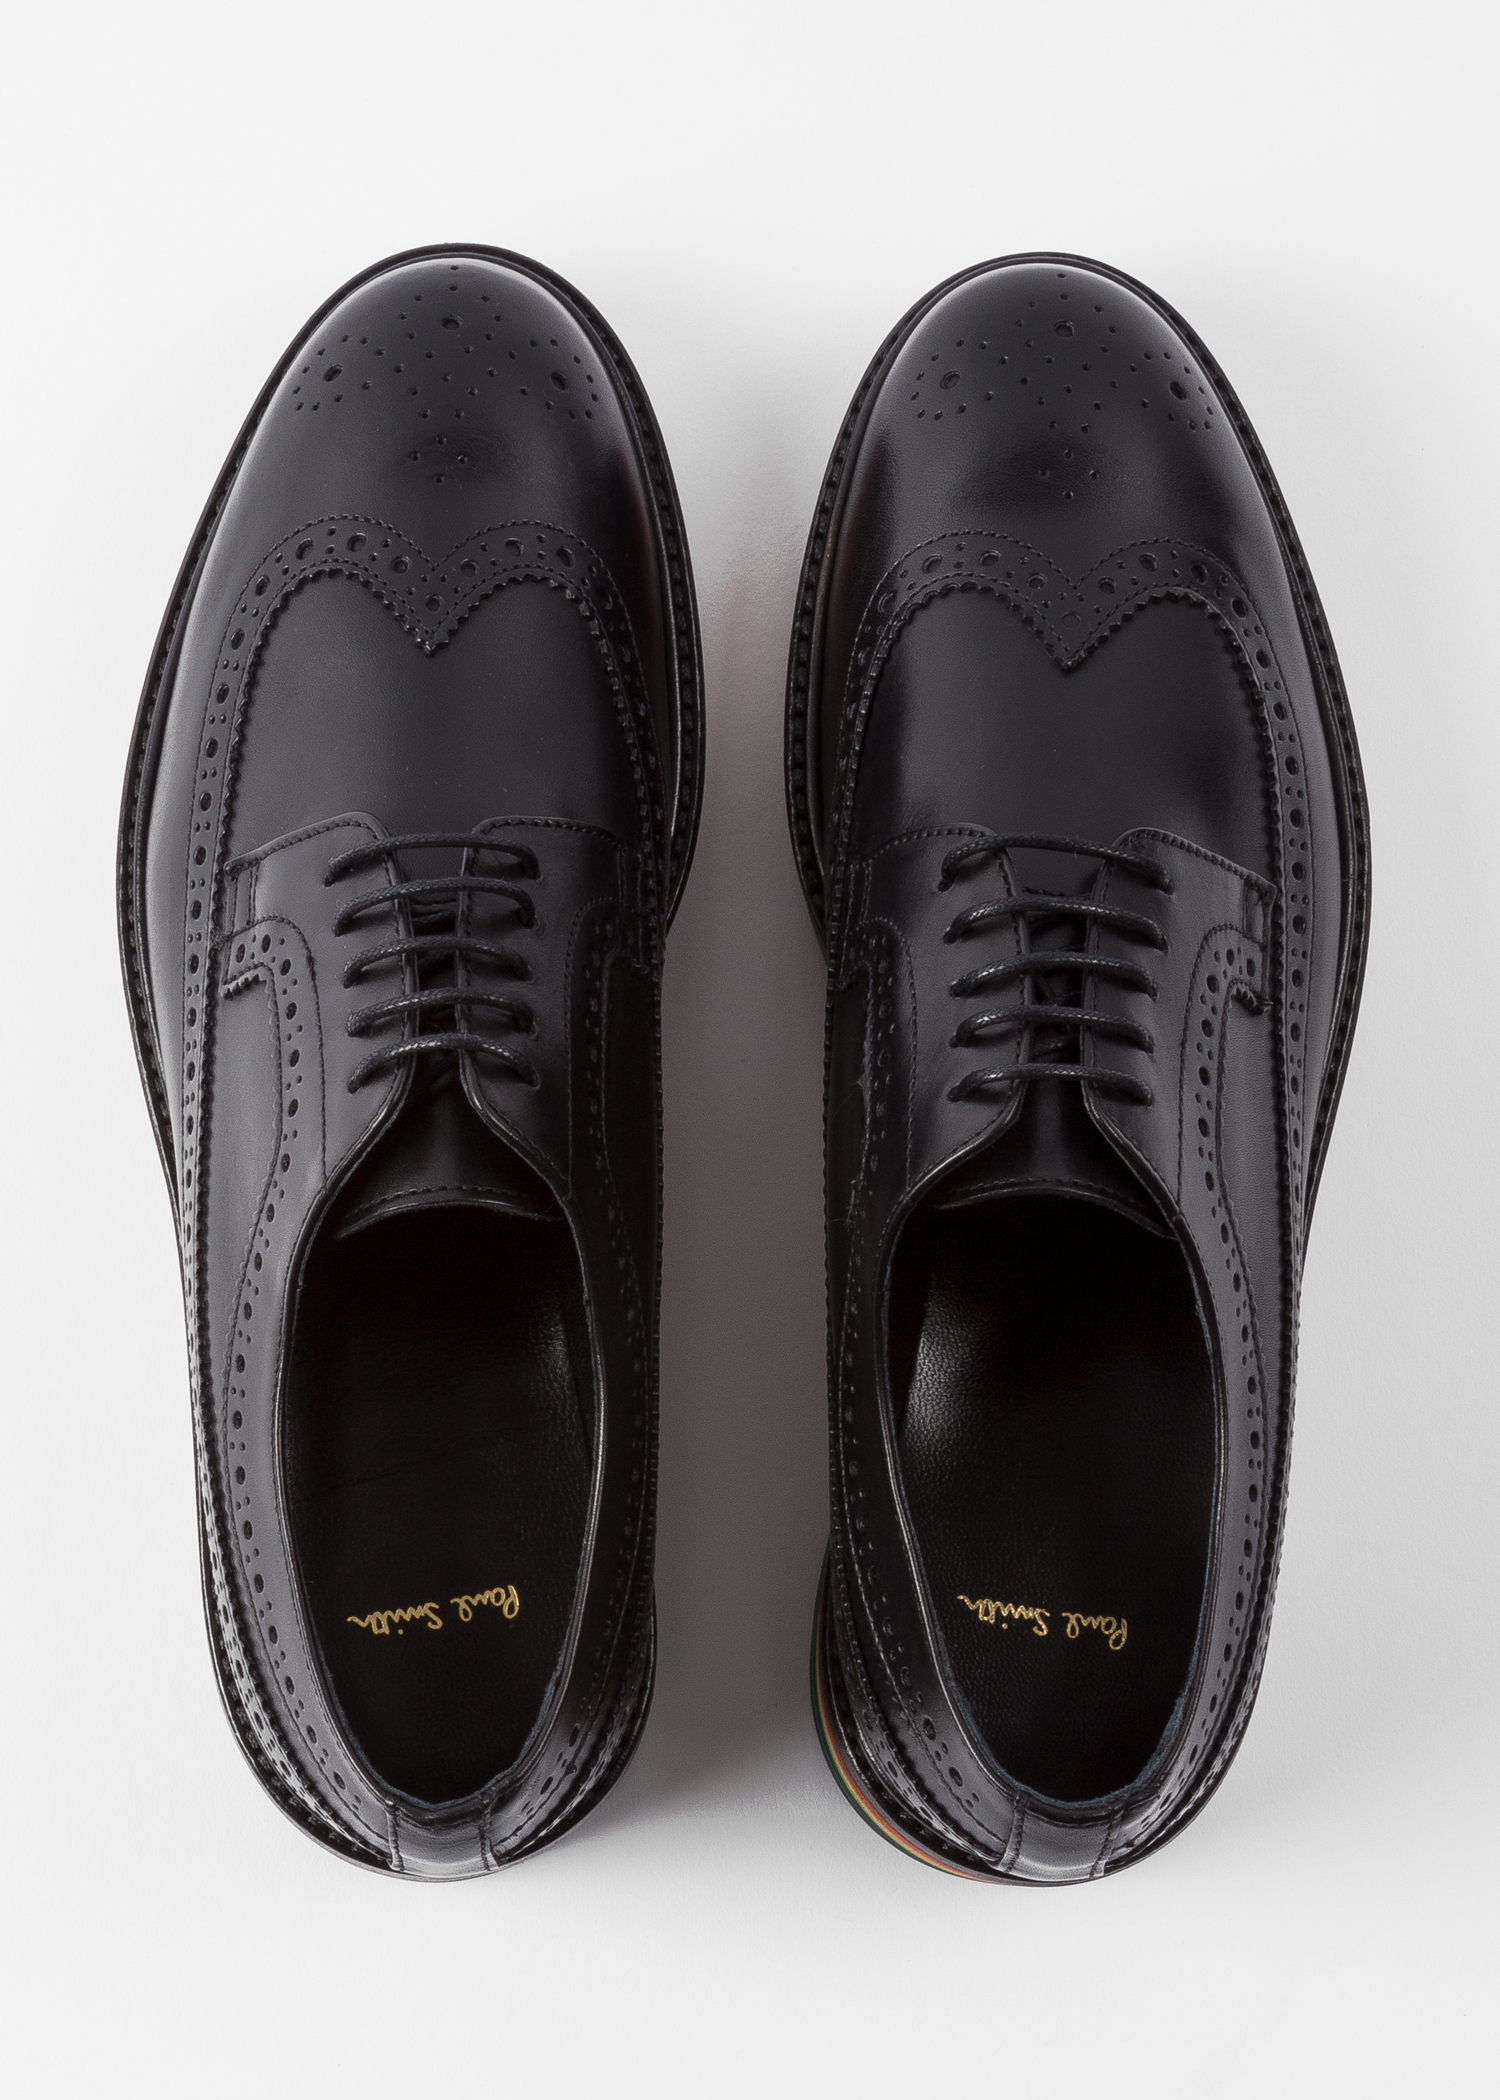 26ab3da8048 Women's Black Leather 'Grand' Brogues With Striped Soles Paul Smith